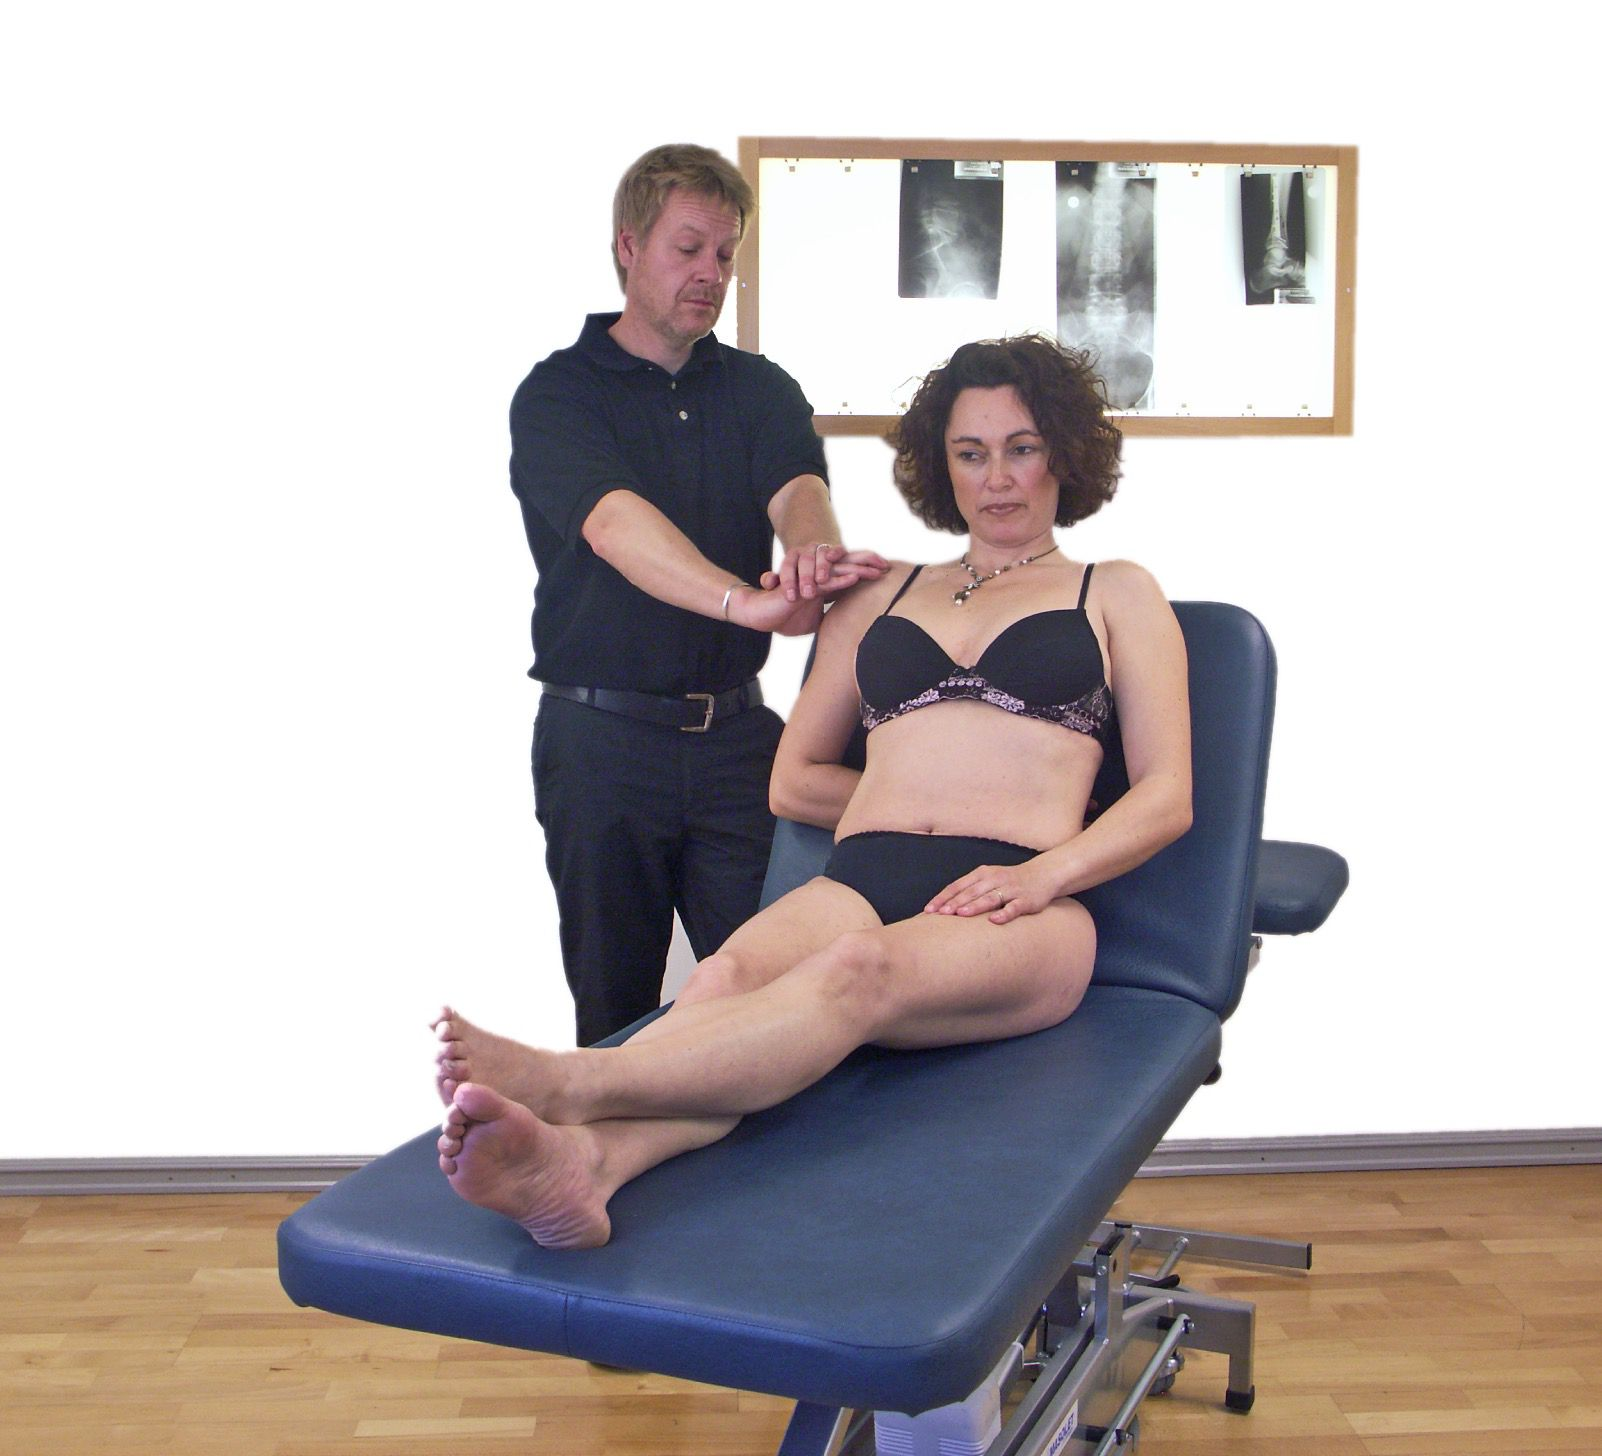 Friction massage supraspinatus